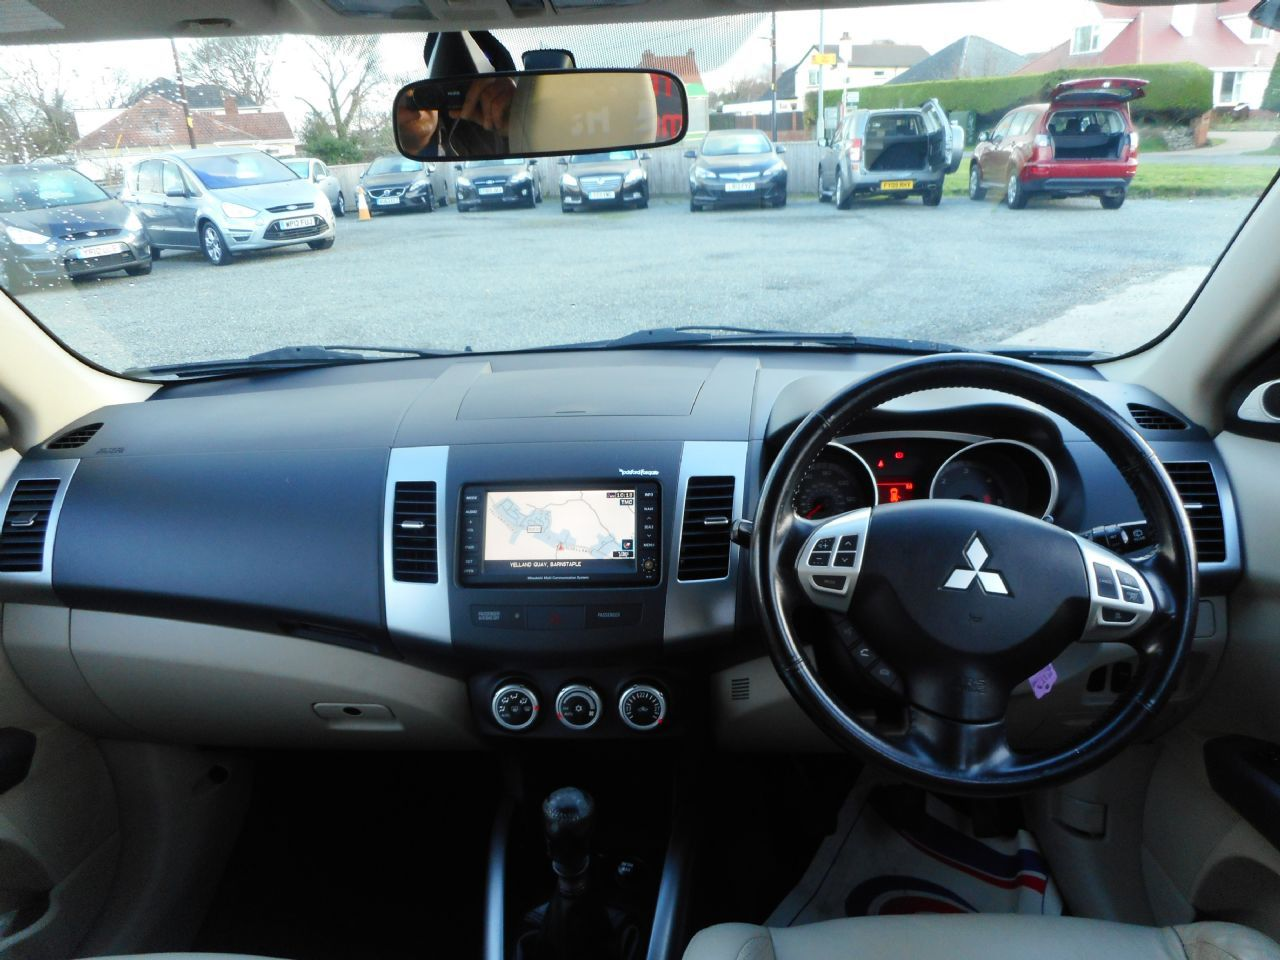 MITSUBISHI OUTLANDER  II DIESEL ESTATE - 2.2 DI-DC DIAMOND 5DR - Picture 3